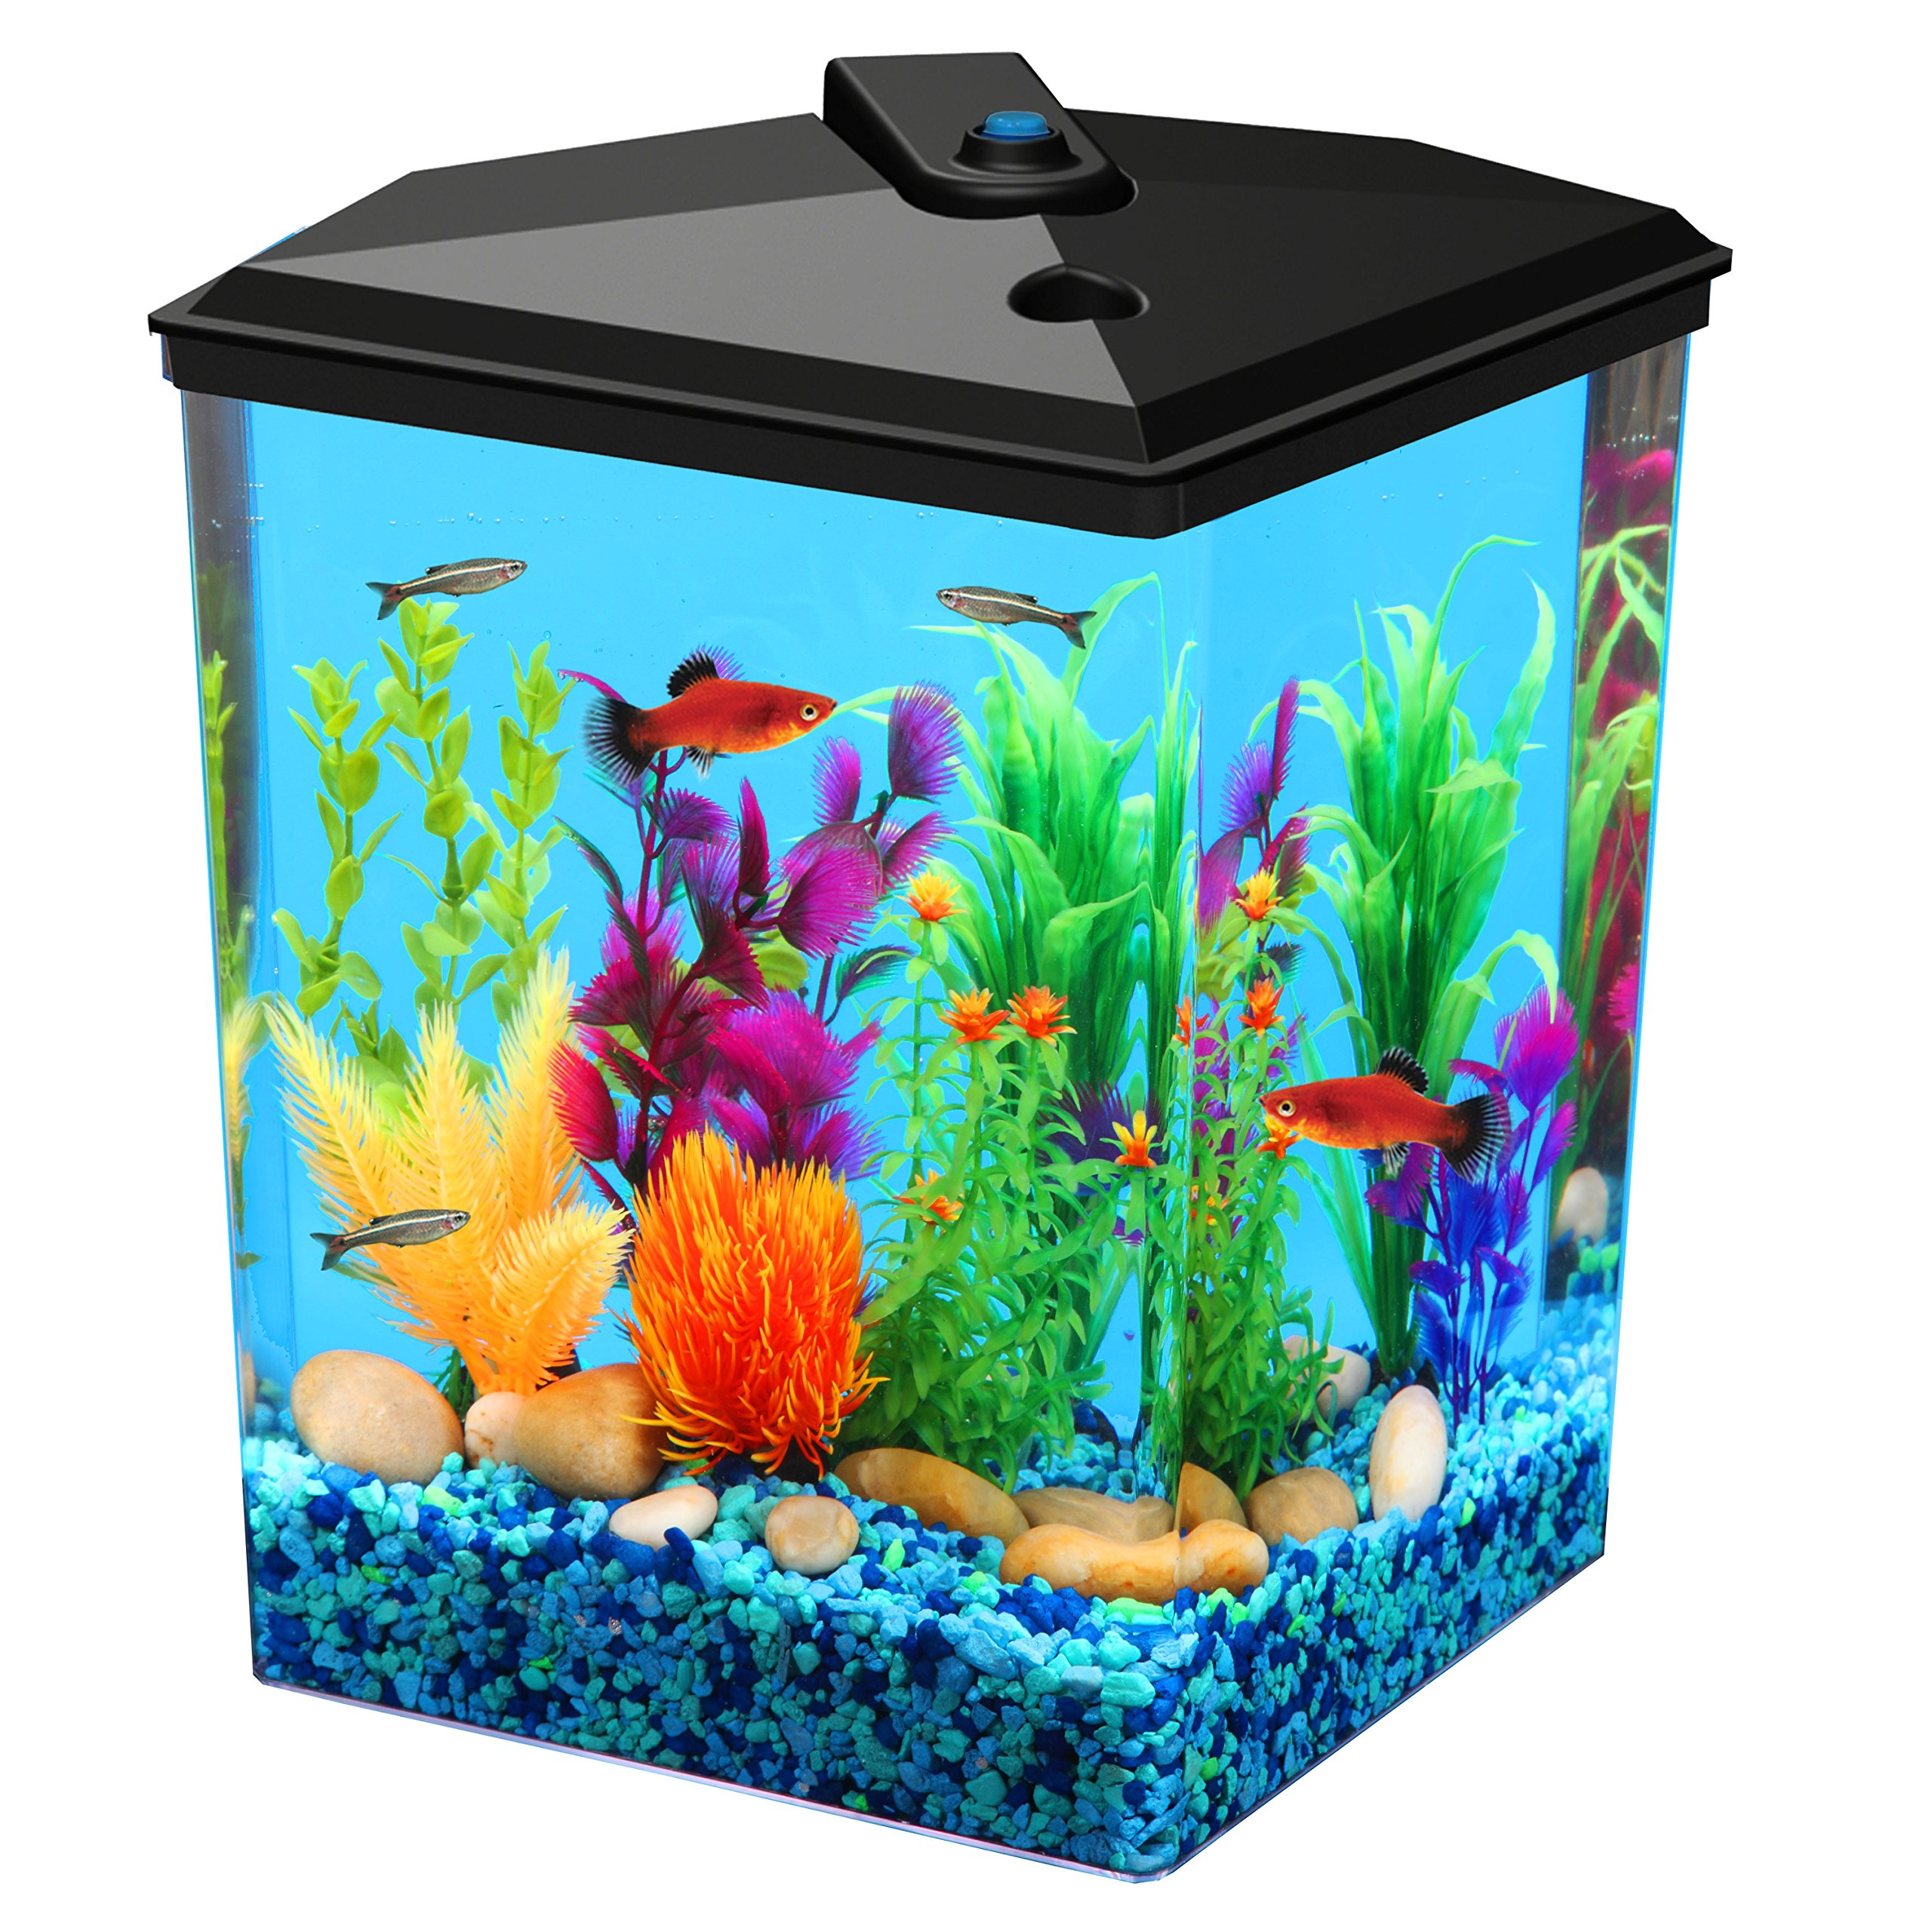 Koller Products 2.5-Gallon Aquarium Kit with LED Light and Power Filter, (AP25000FFP) by Koller Products